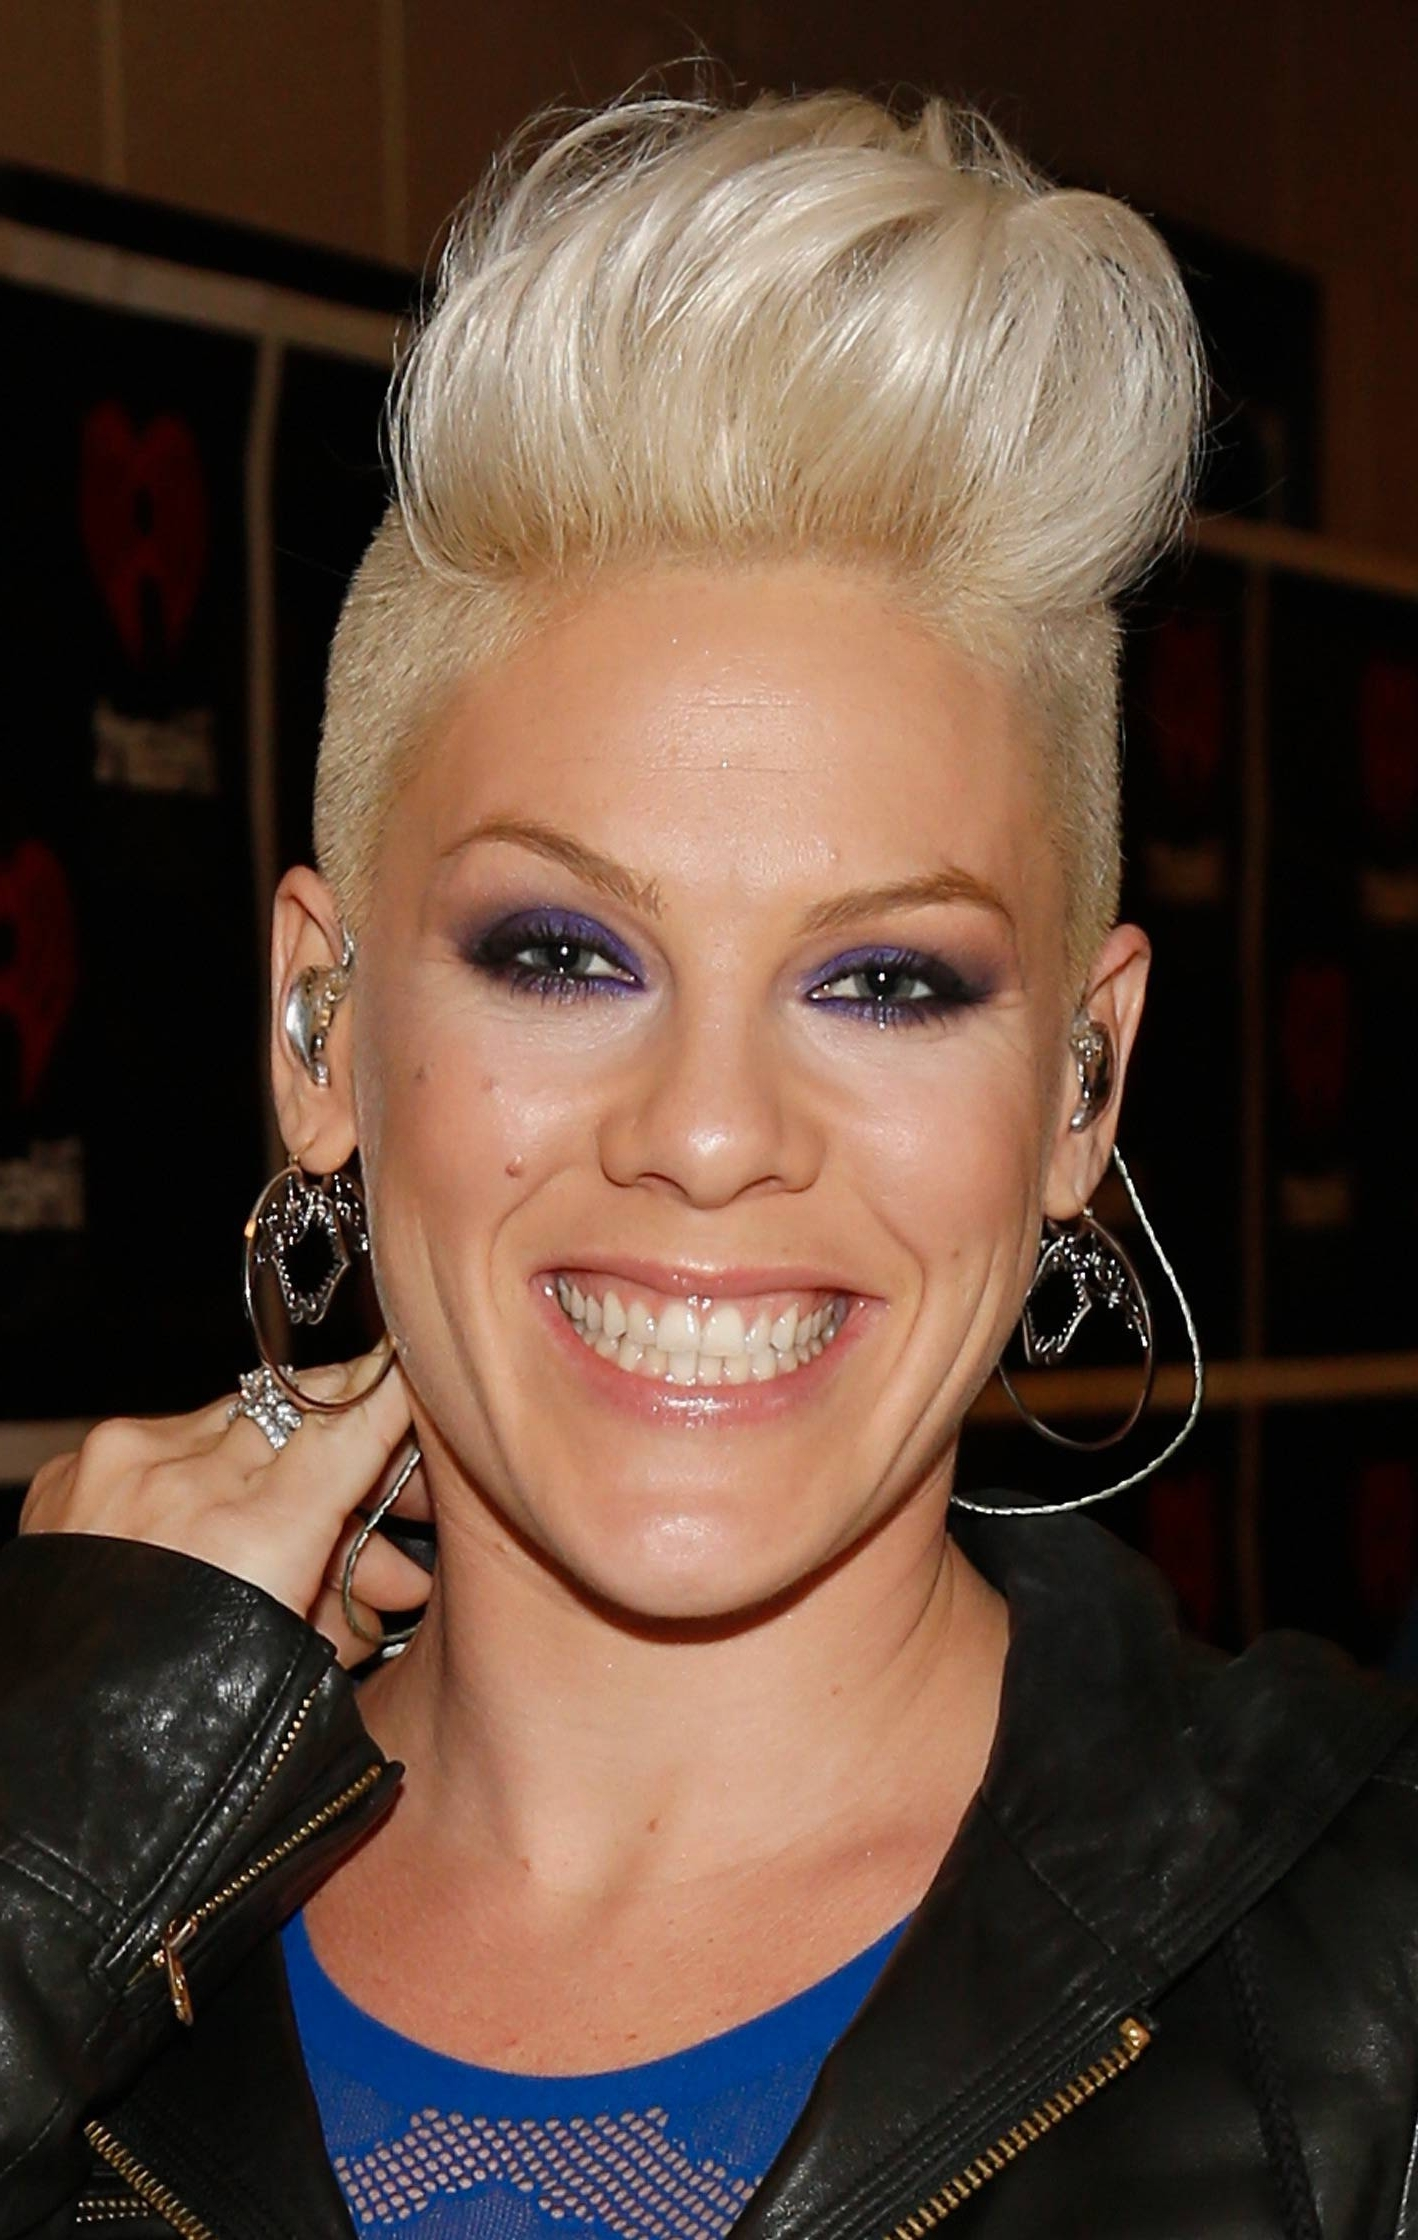 Amazing Pompadour And Quiff Haristyles | Singer Pink, Quiff Regarding Latest Pink Short Pixie Hairstyles (View 13 of 15)